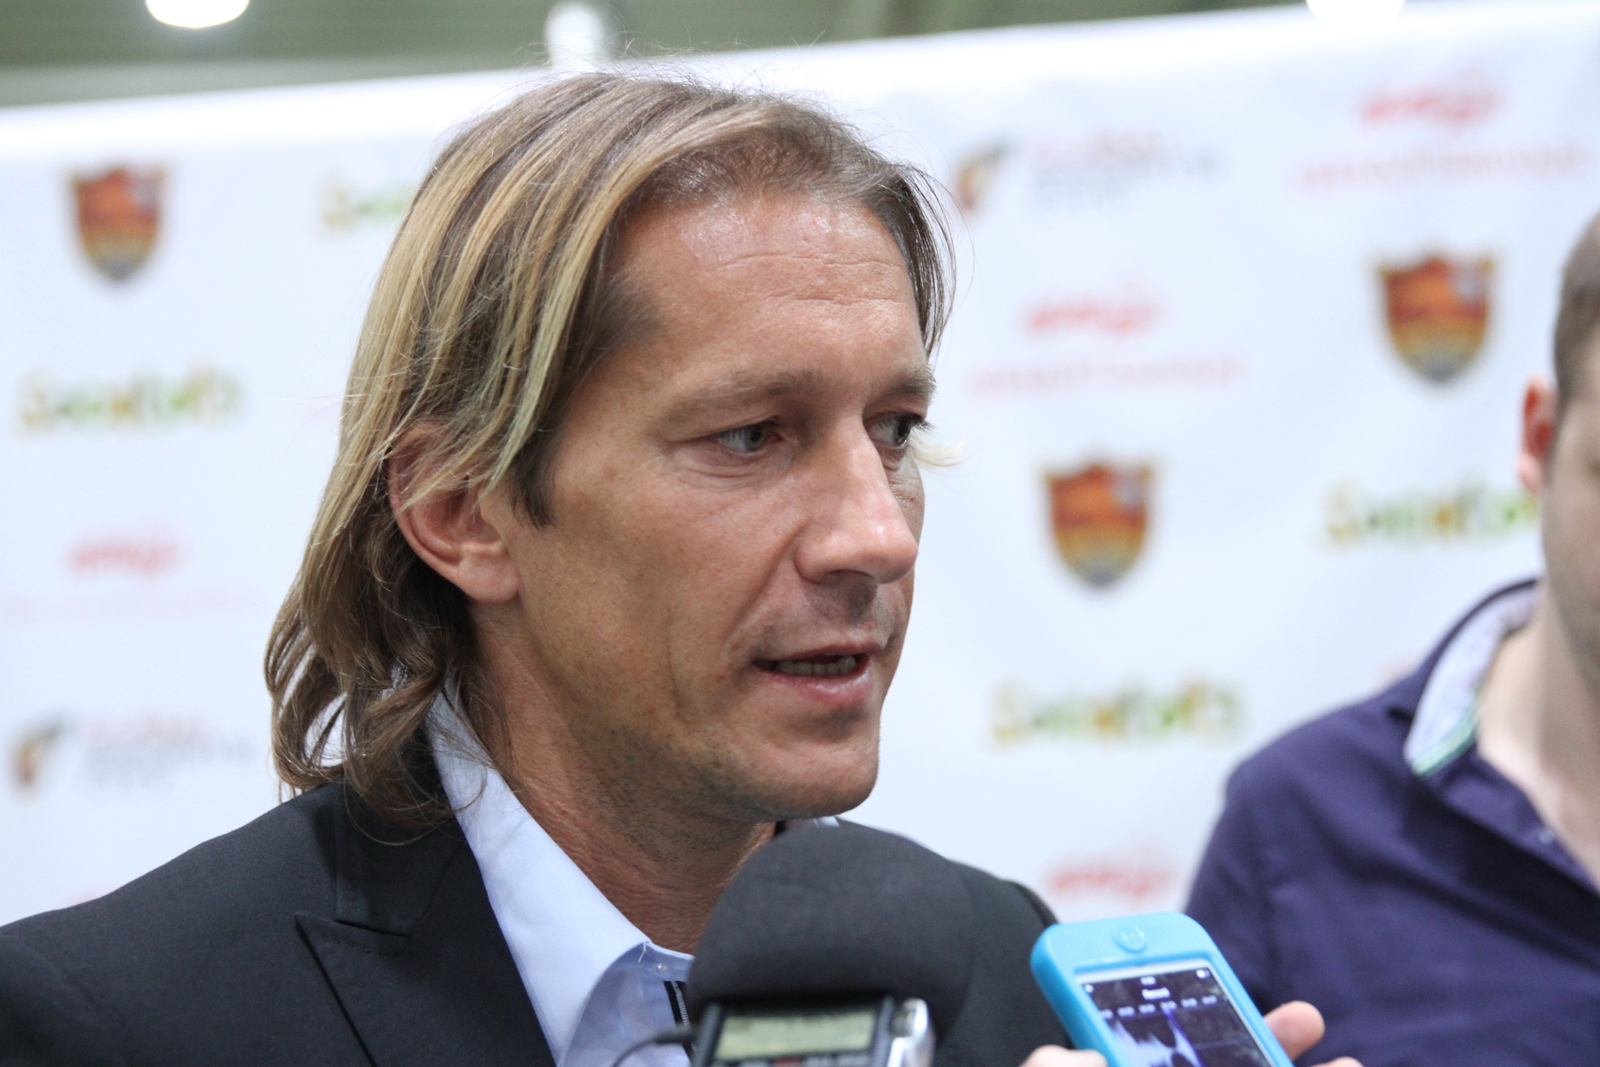 Michel_Salgado__the_former_Real_Madrid_and_Spain_legend_and_now_Dubai_Sports_City_Football_Academy_Director_of_Football_speaks_to_media_at_the_Indoor_Dome